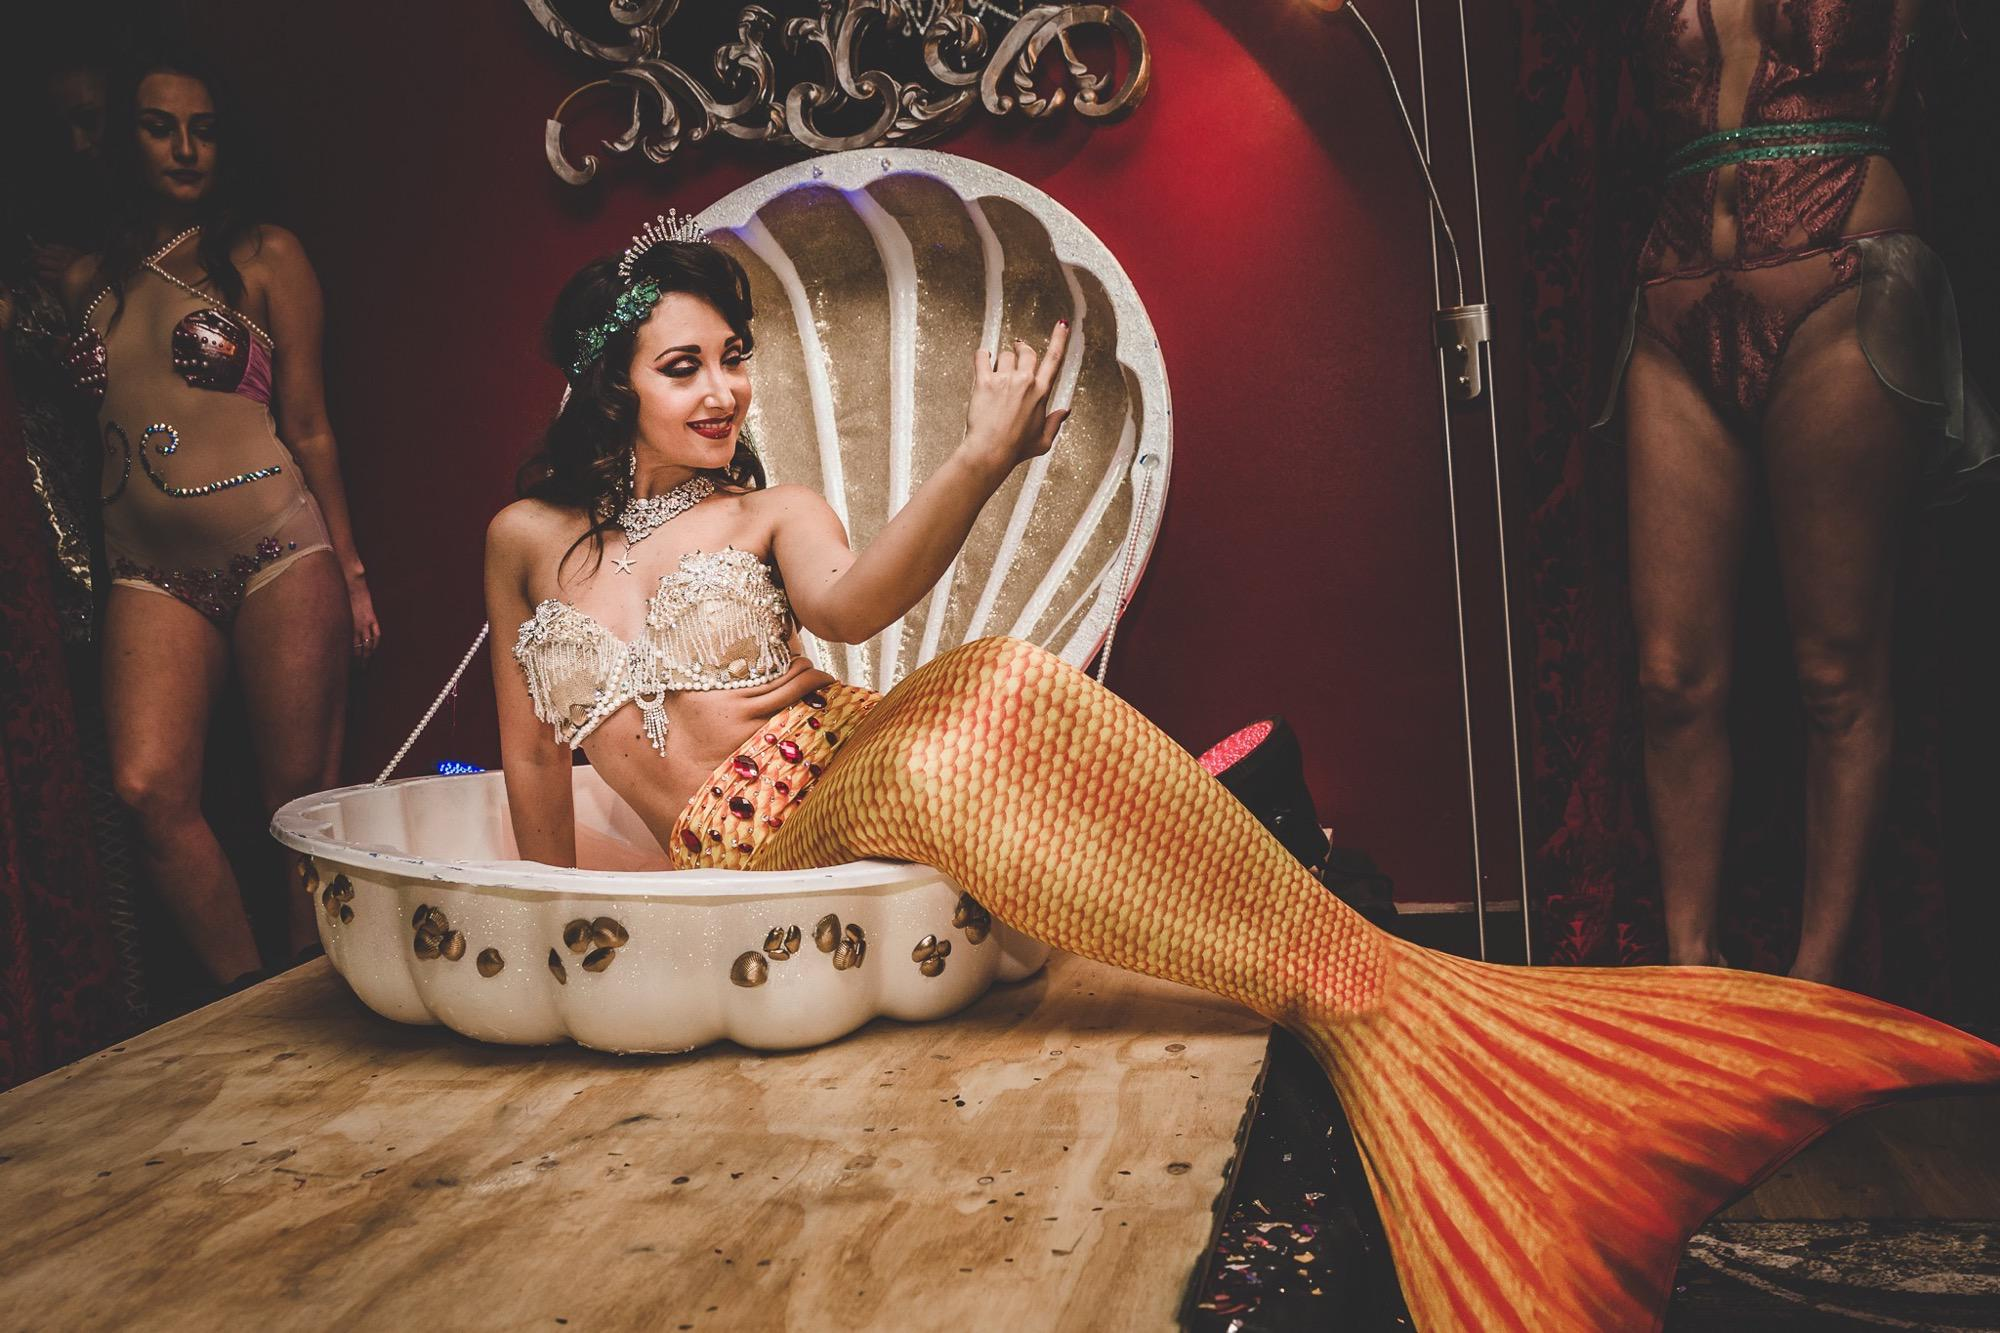 mermaid burlesque